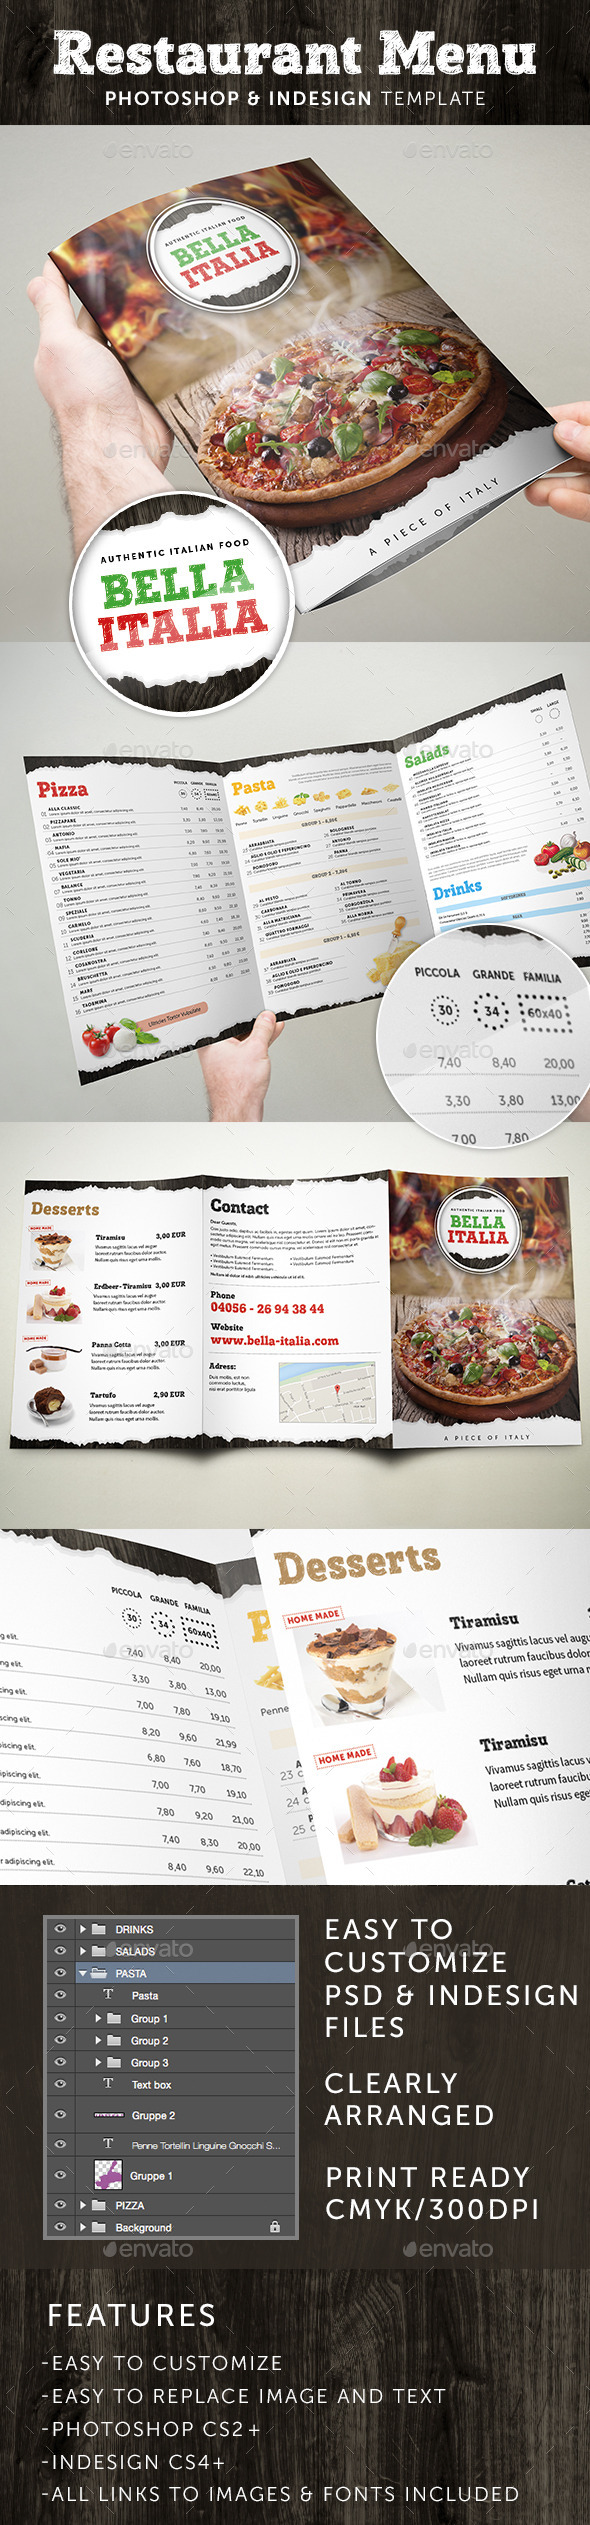 Restaurant menu folder photoshop indesign template by made in germany for Photoshop menu template